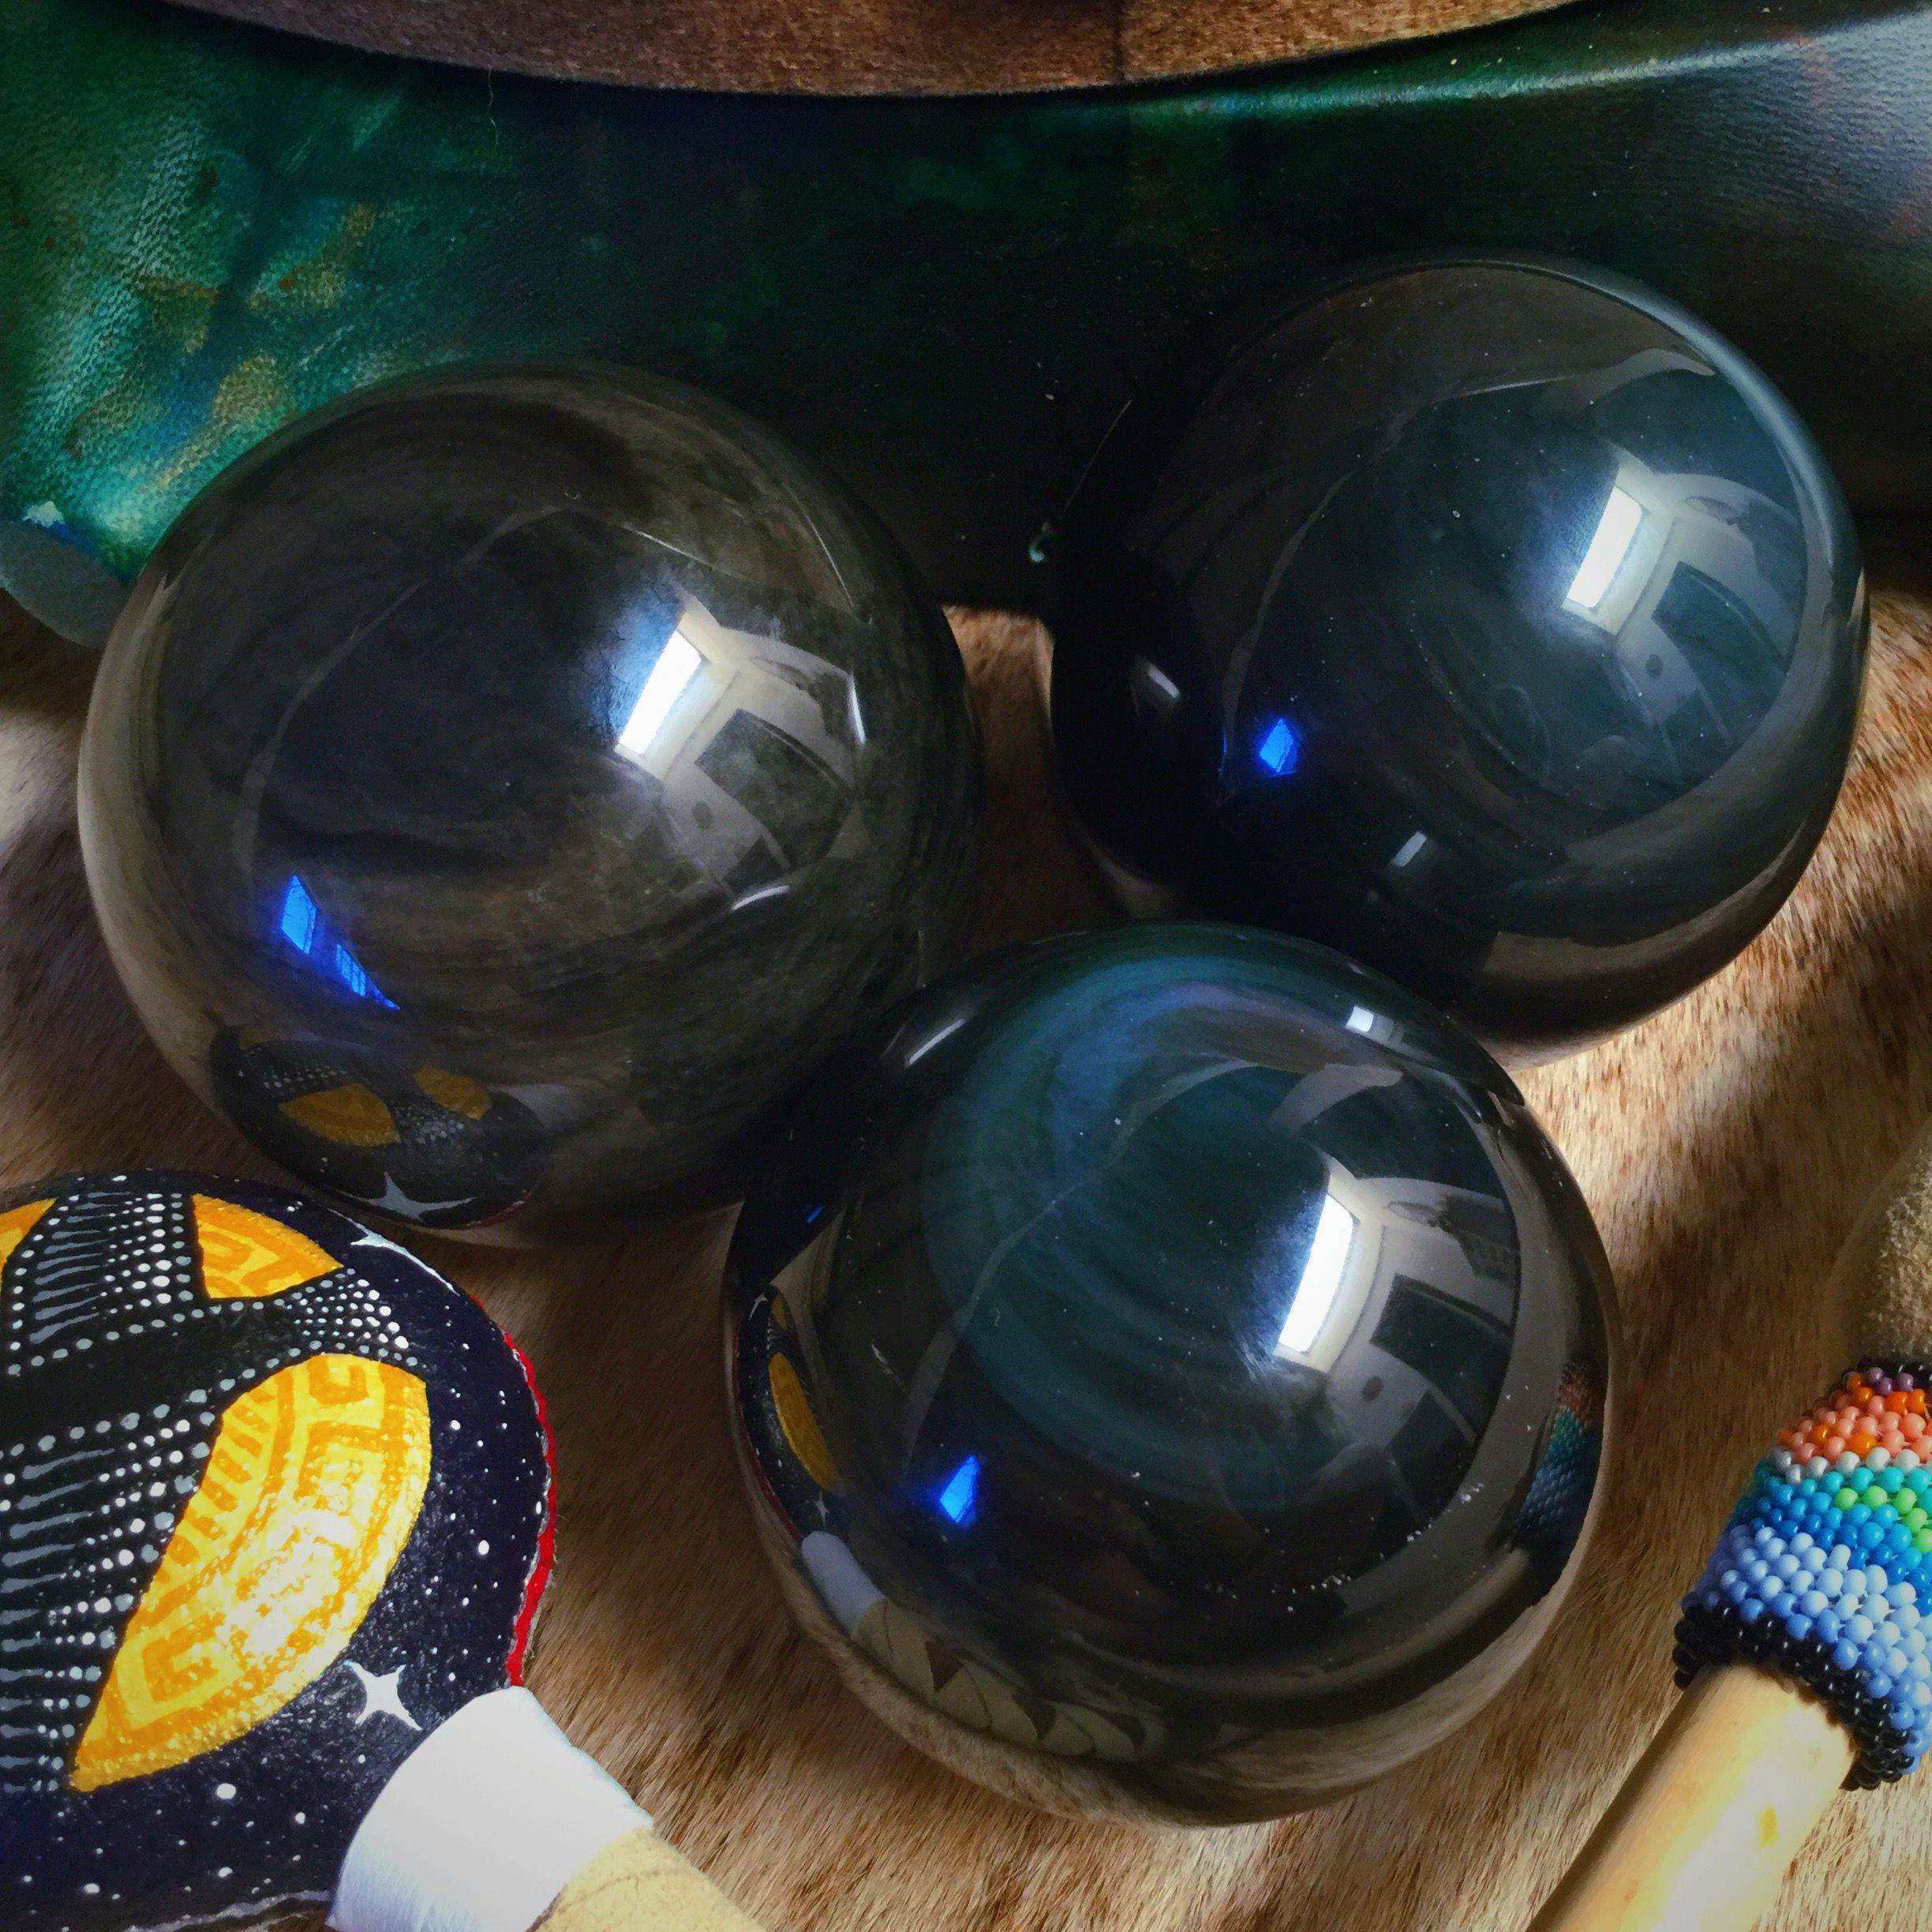 rainbow-obsidian-spheres.jpg.optimal